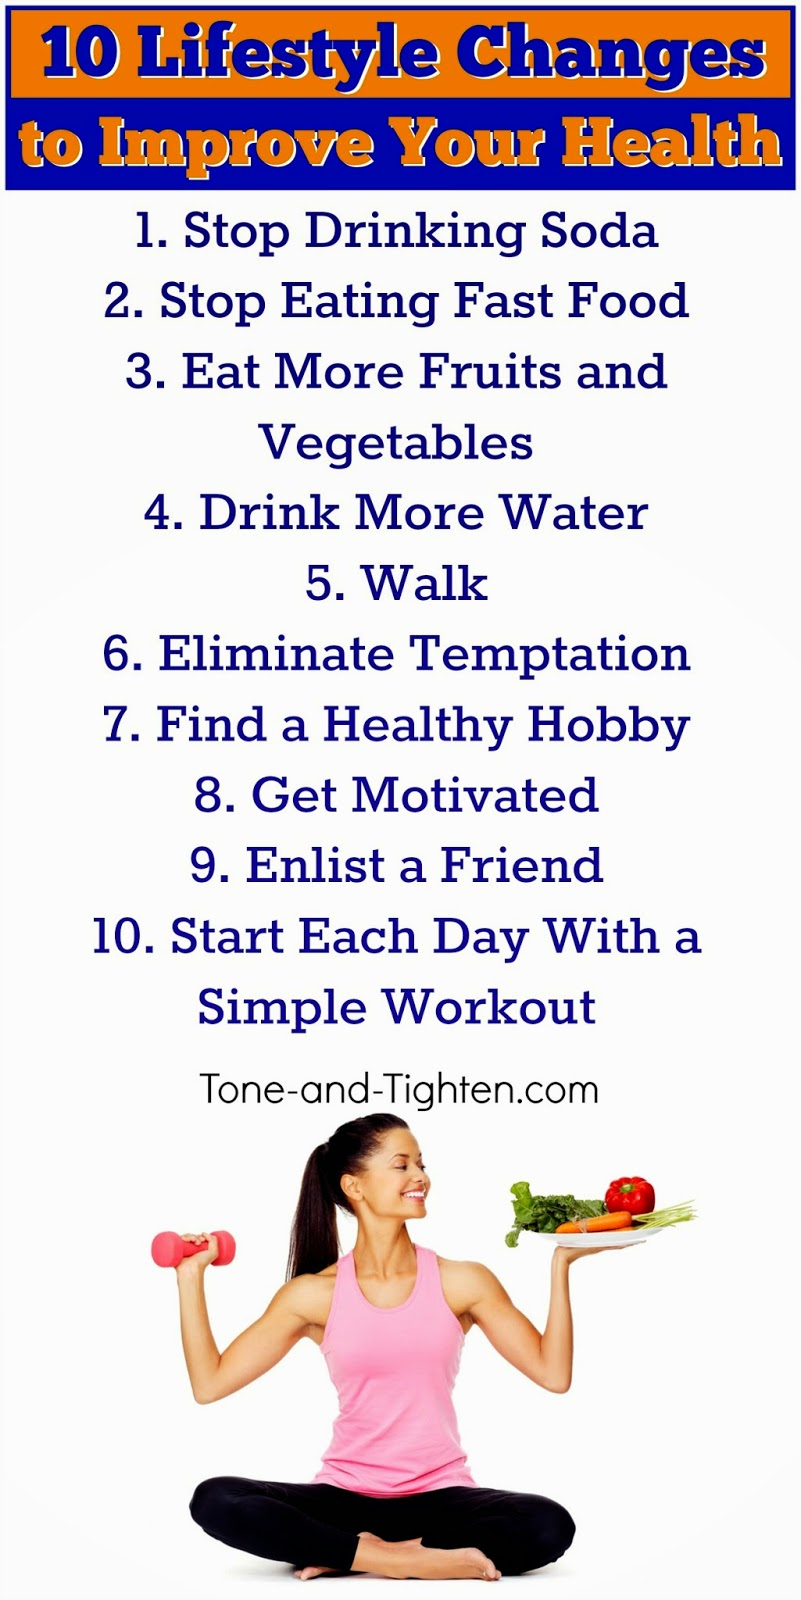 10 easy lifestyle changes to help you improve your health ...